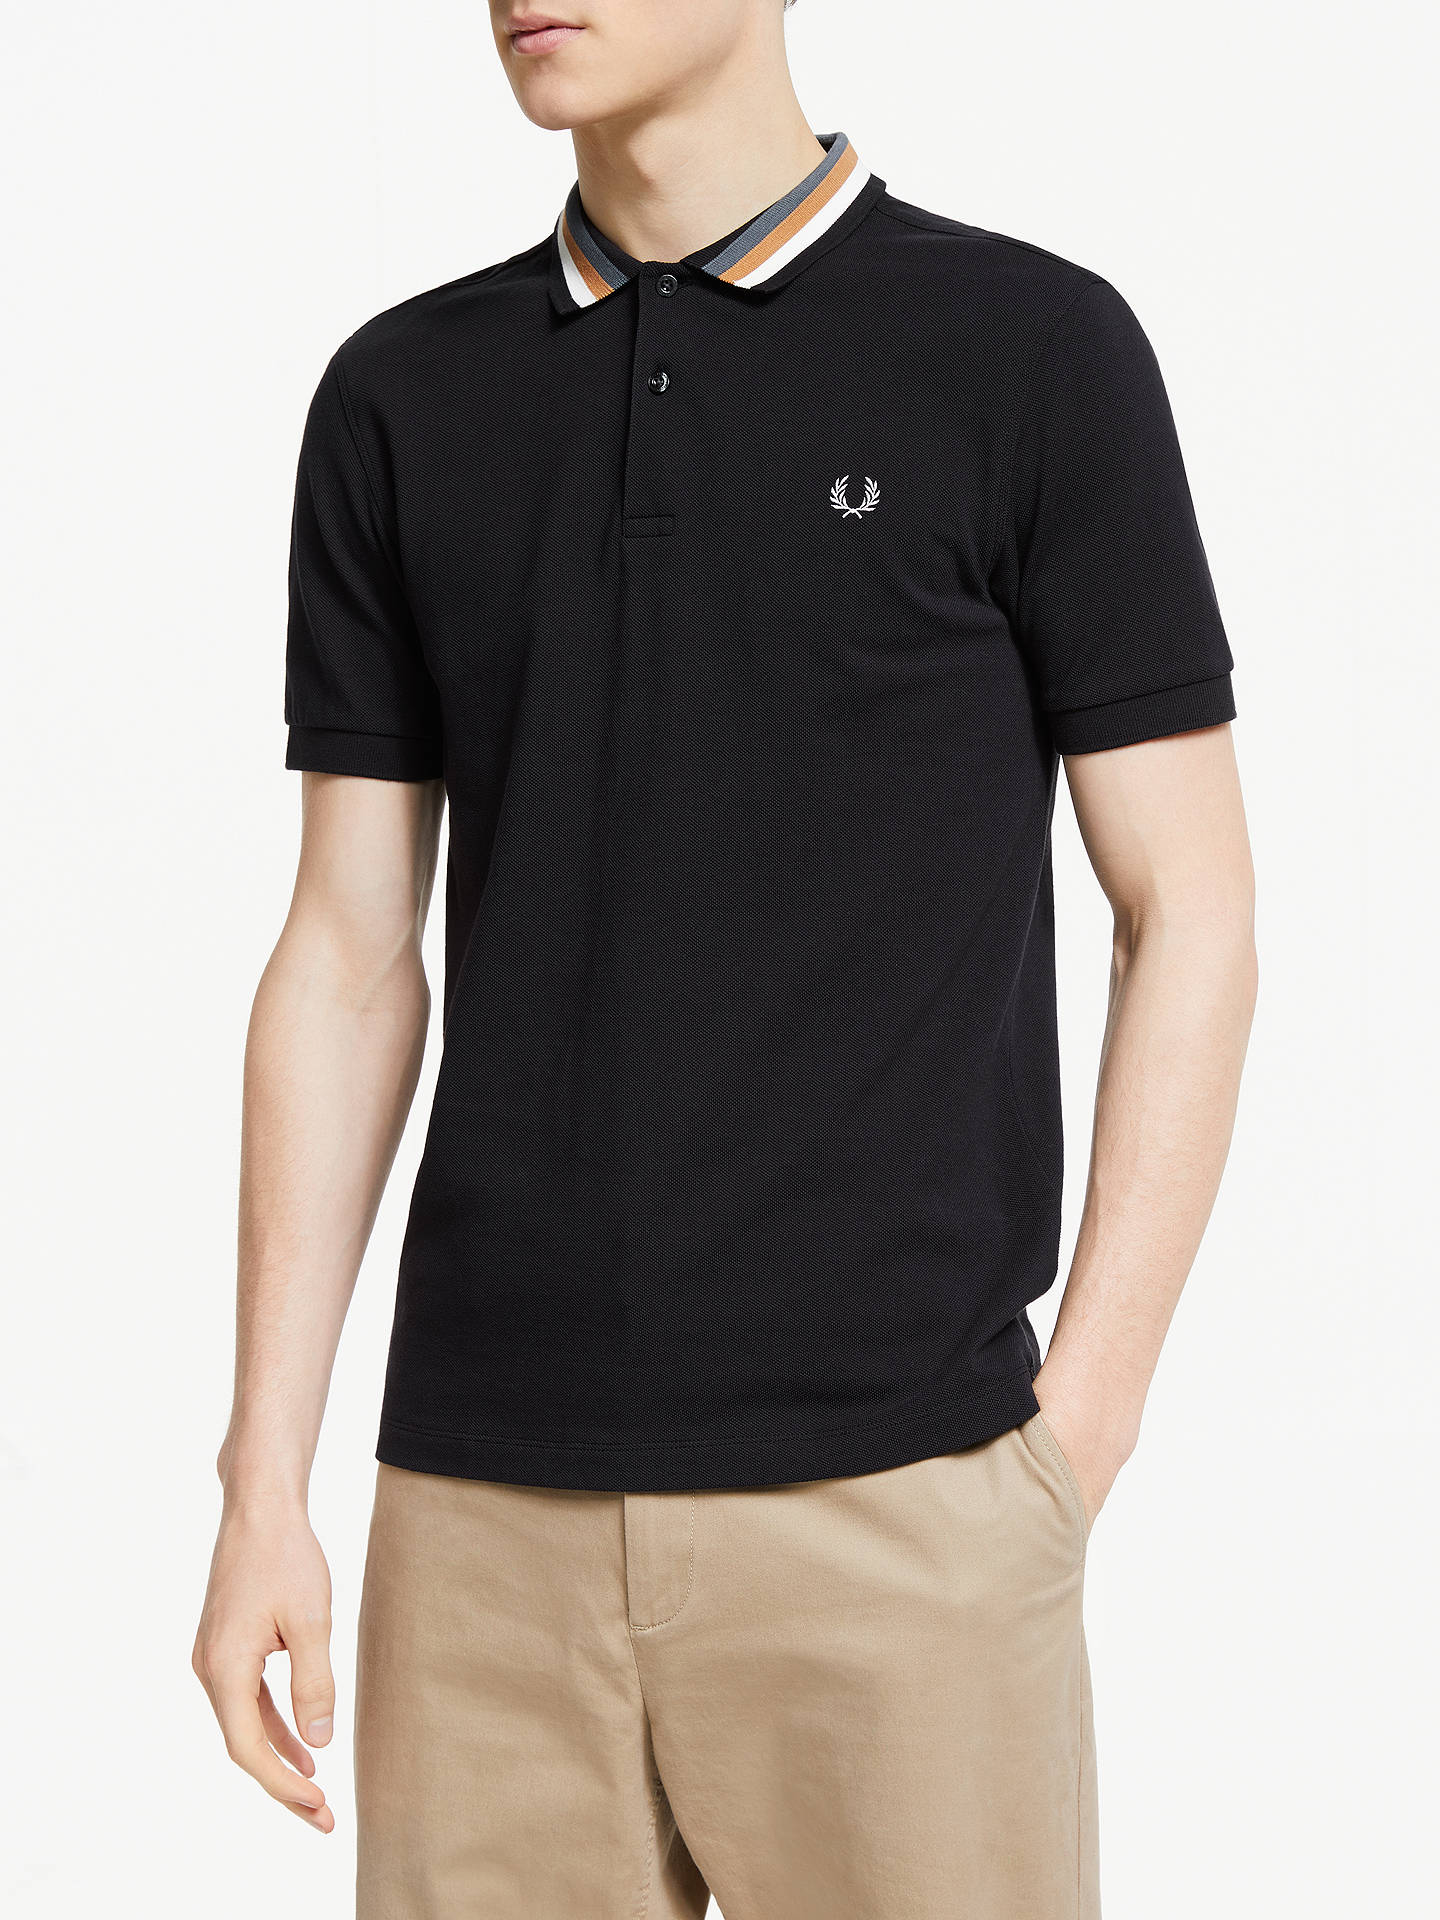 8650107e Buy Fred Perry Bomber Stripe Polo Shirt, Black, XL Online at johnlewis.com  ...